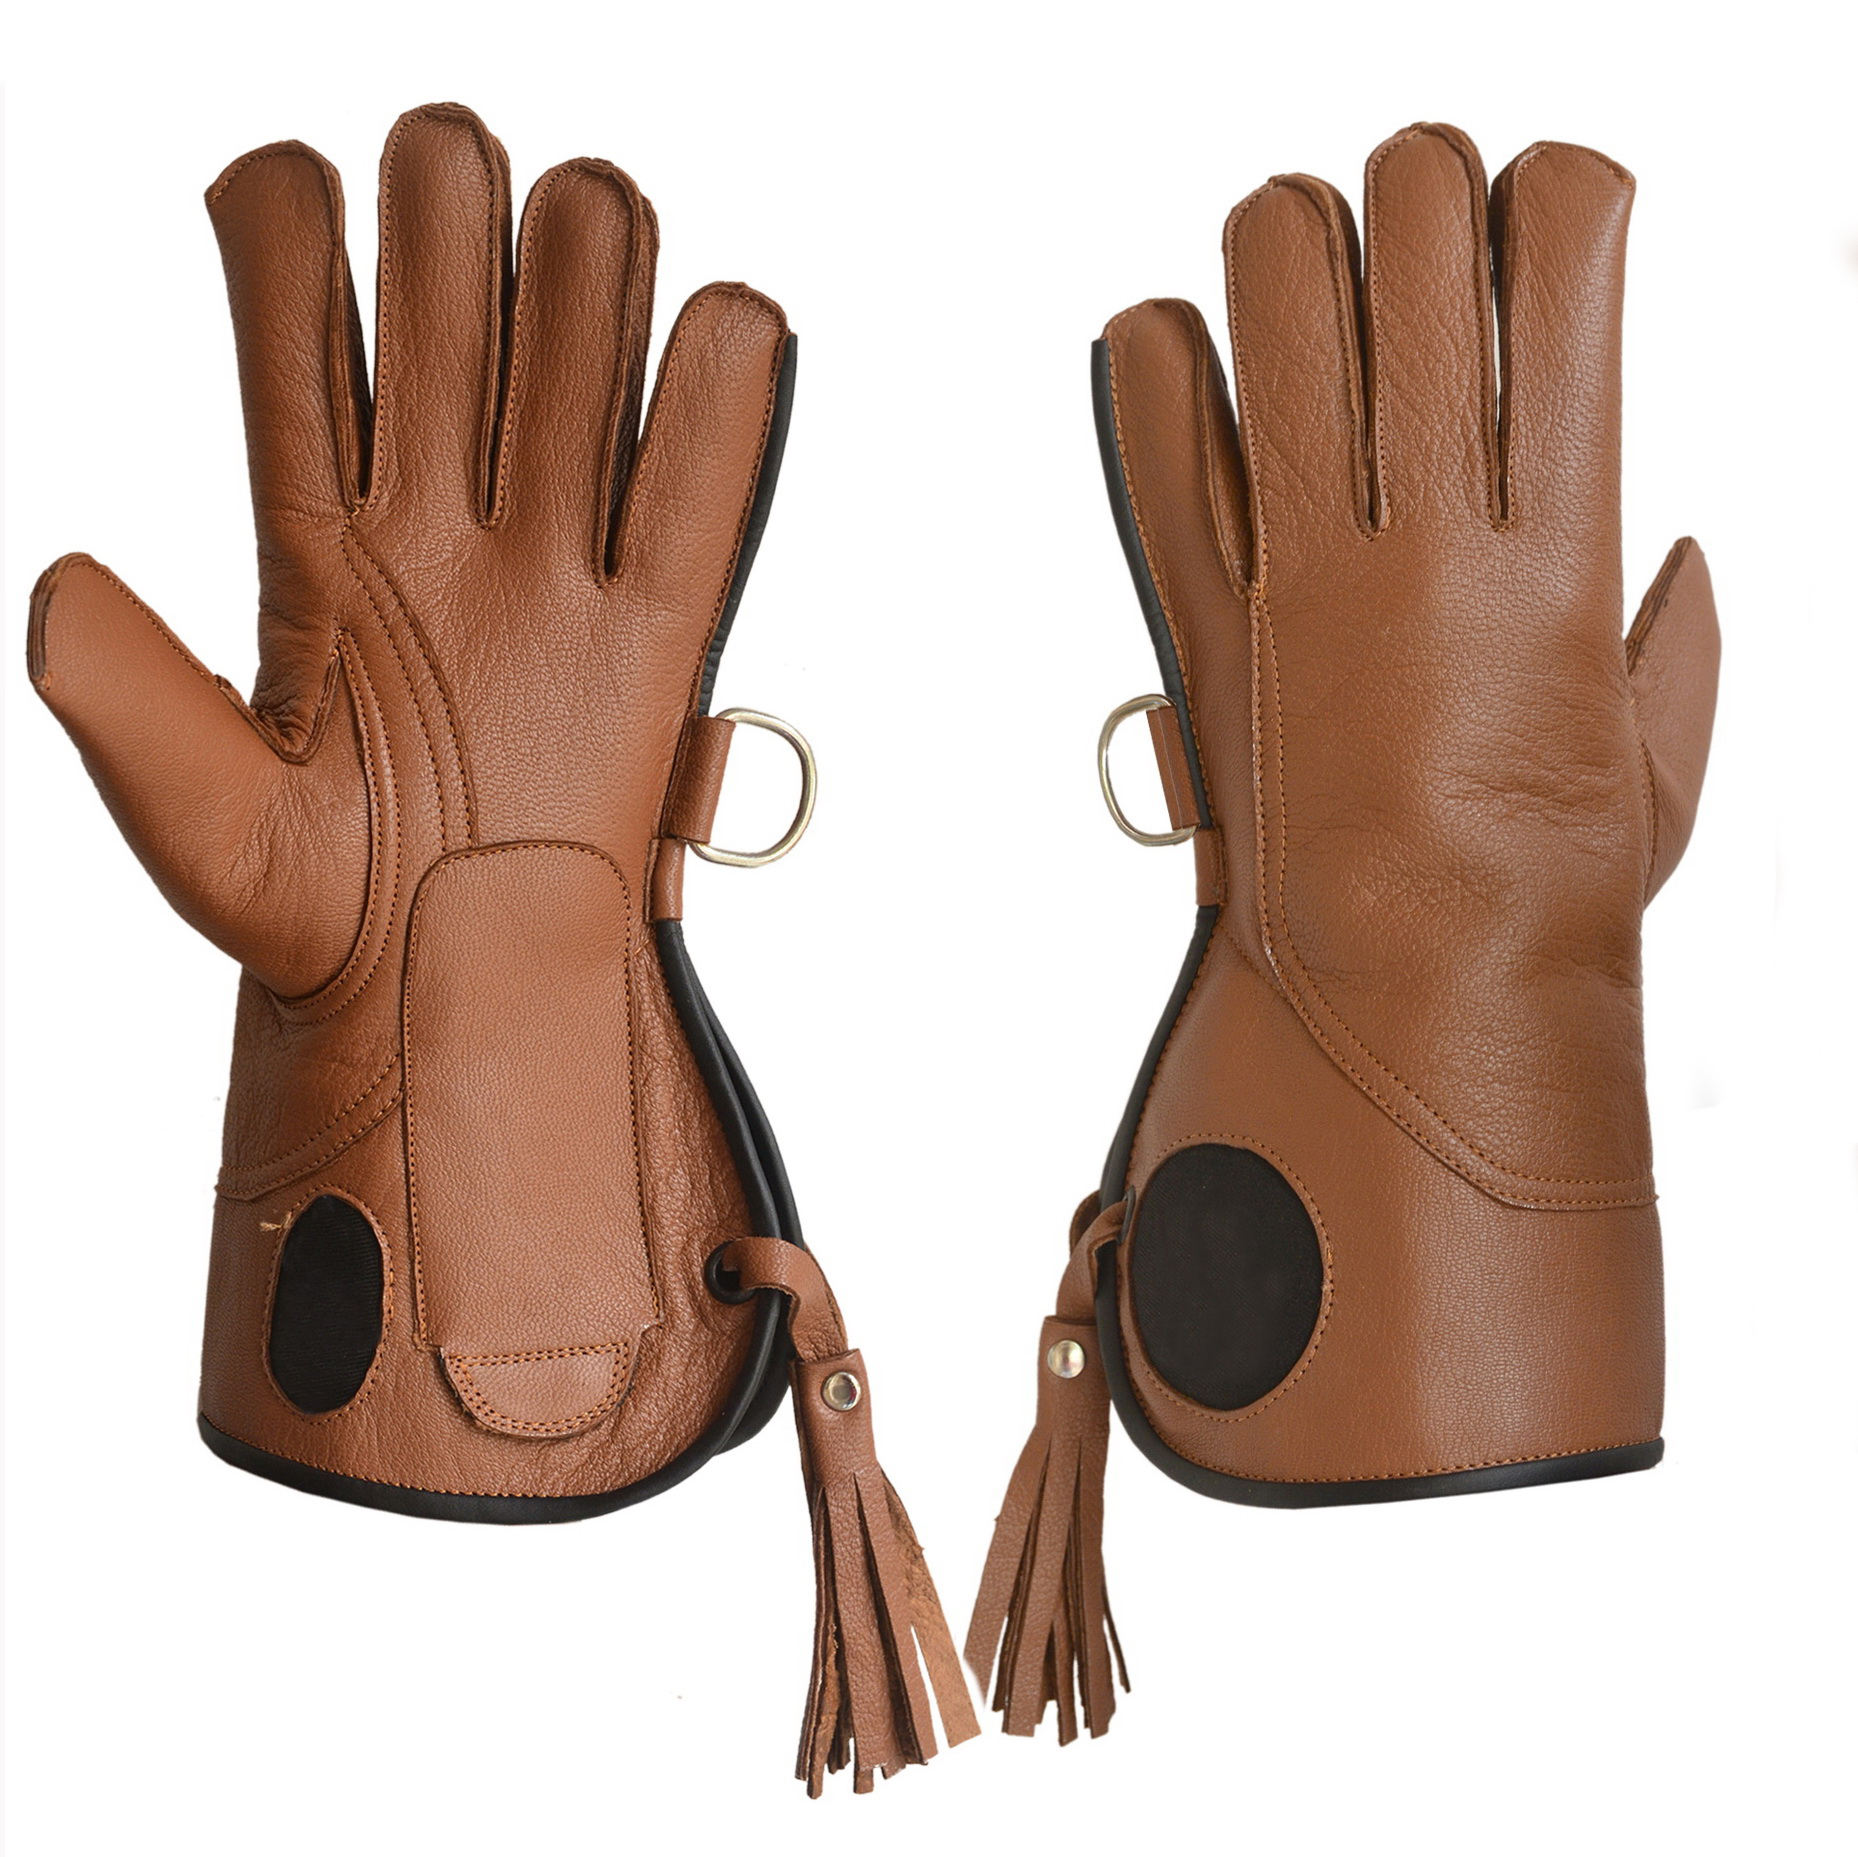 "Premium Quality Falconry Gloves gauntlet two layer glove 14"" long left hand glove brown color soft goat skin leather"